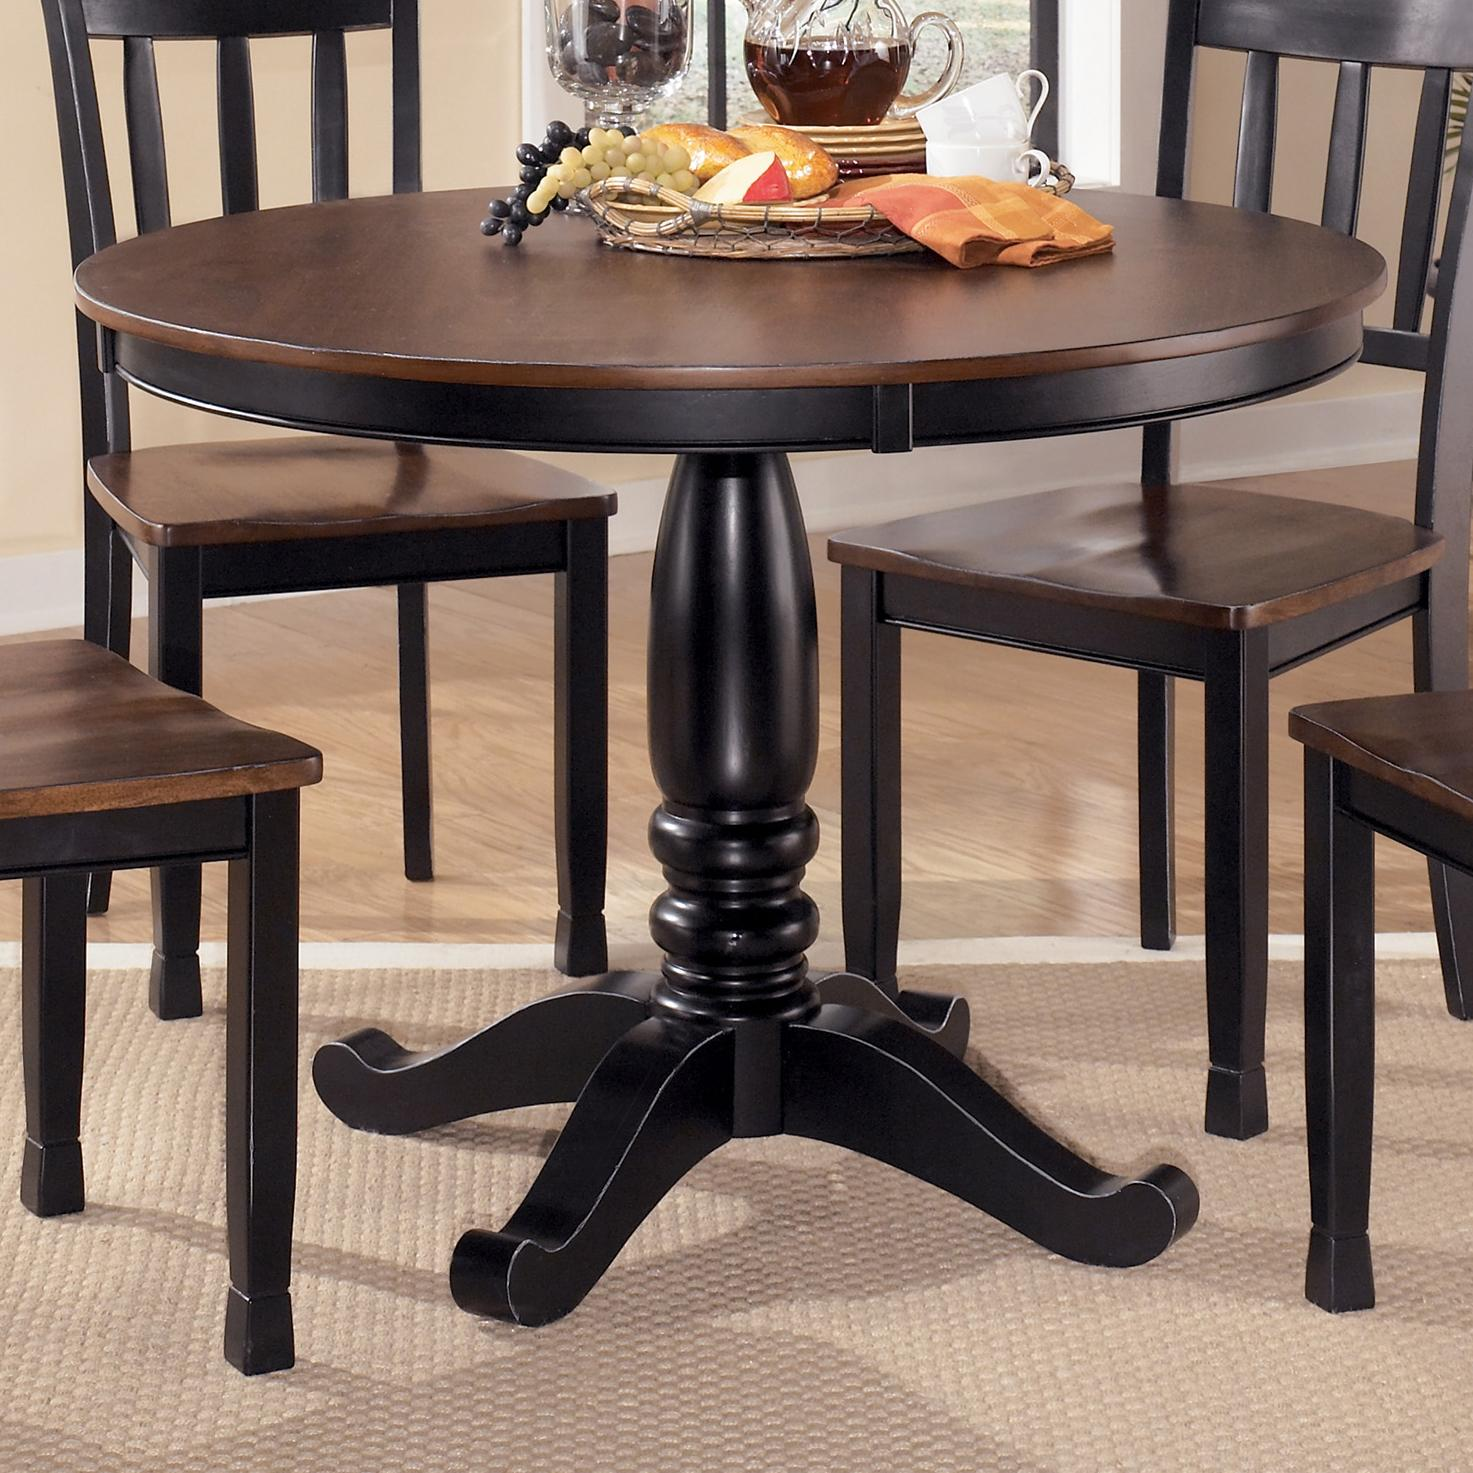 Signature Design by Ashley Owingsville Round Dining Room Table - Item Number: D580-15B+15T